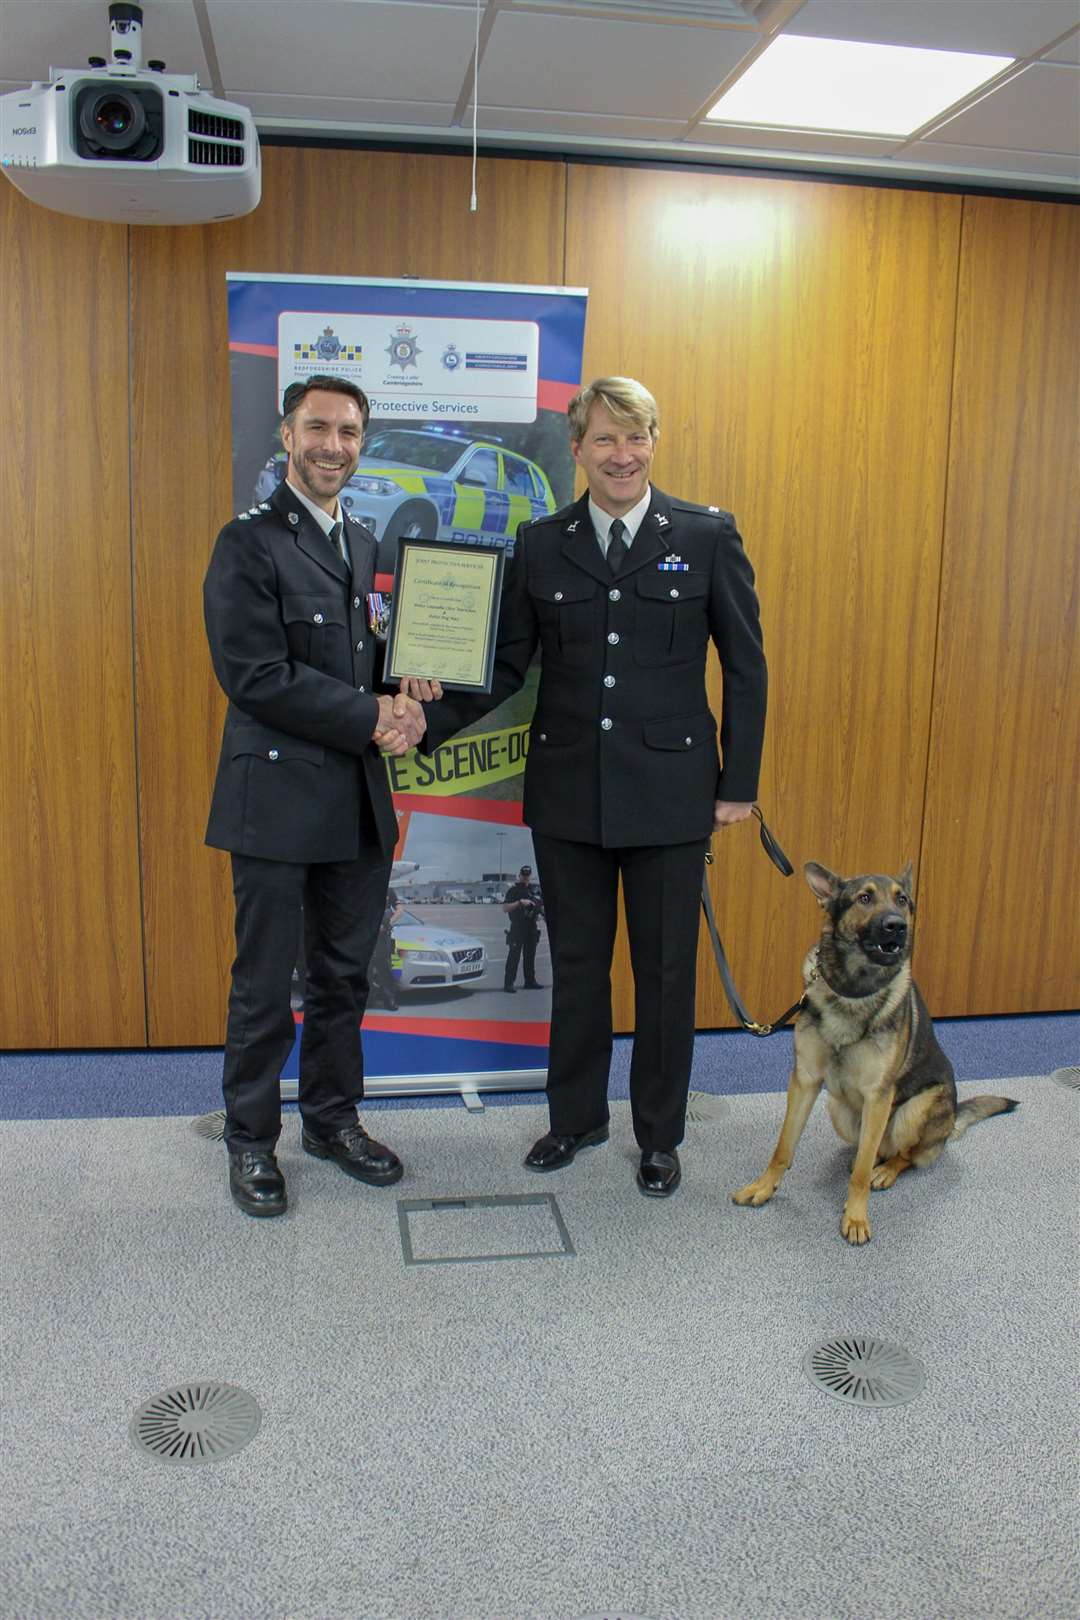 Chief Inspector Robin Sissons (left) awarding the certificate to PC Clive Warncken and police dog Max (6158645)